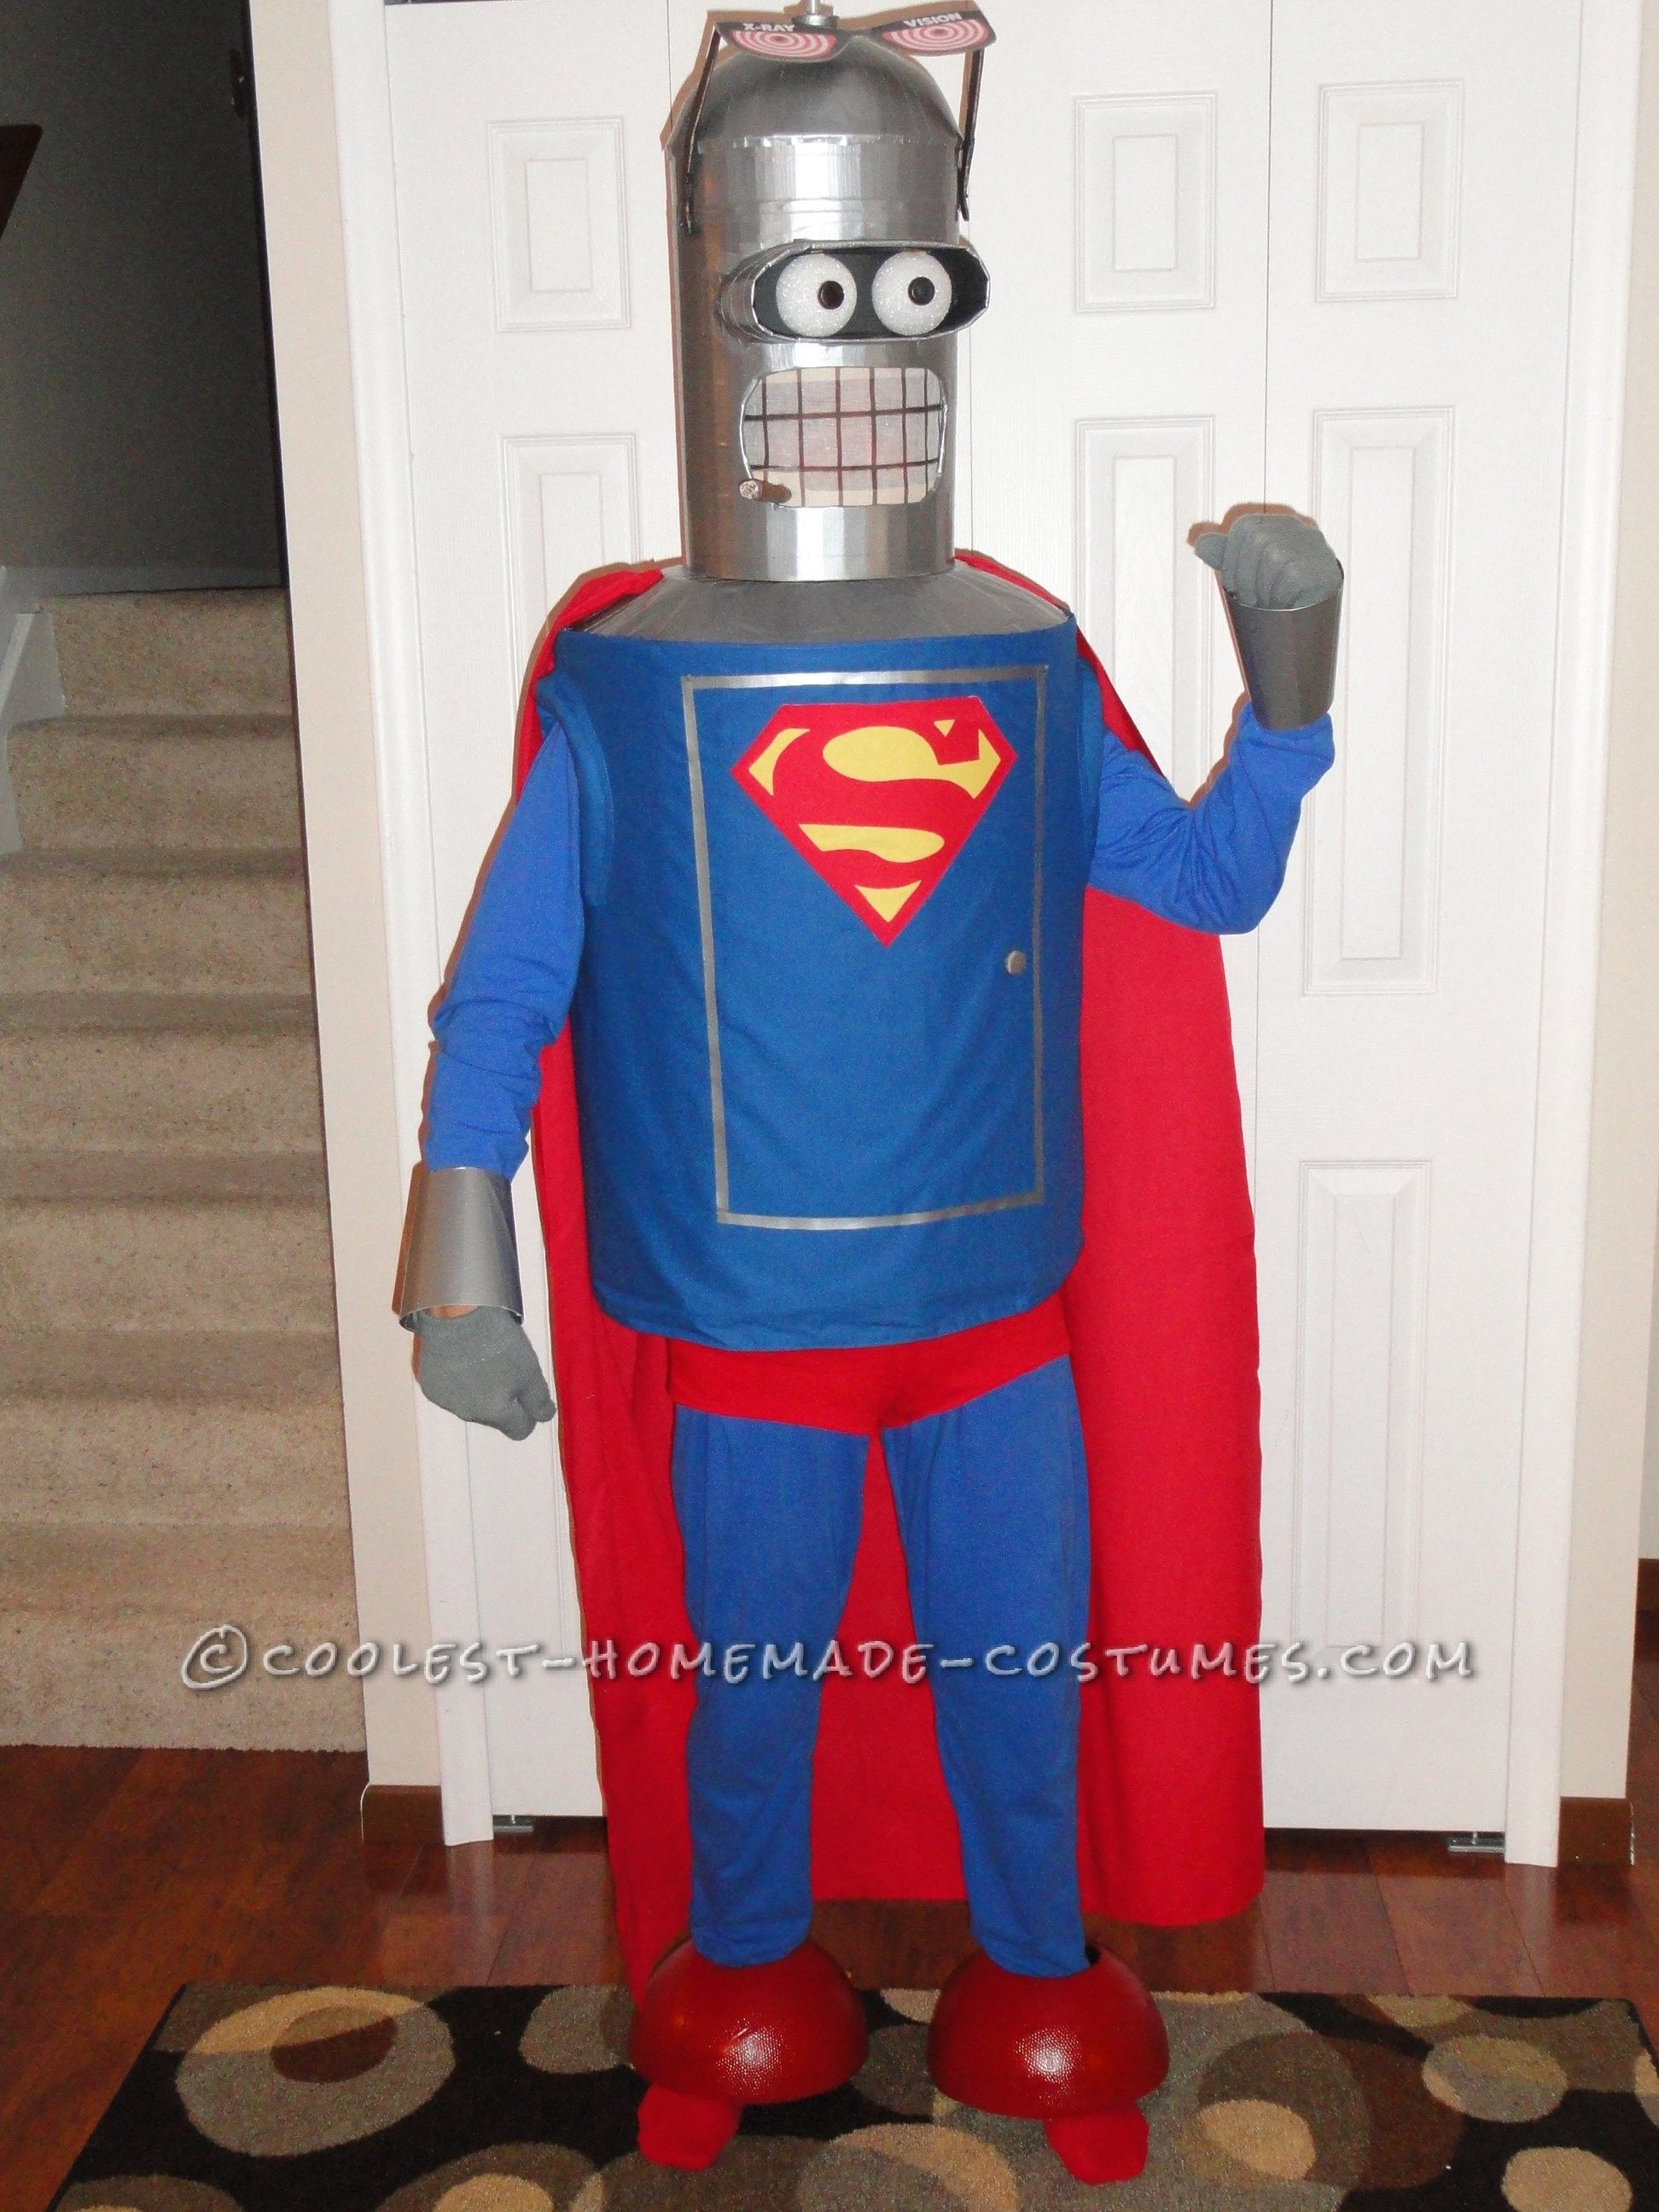 Cool Homemade Comic Convention Costume Ideas Super Bender Futuramau0027s Man of Steelu2026 Enter the Coolest Halloween Costume Contest at ... & Cool Homemade Comic Convention Costume Ideas: Super Bender ...